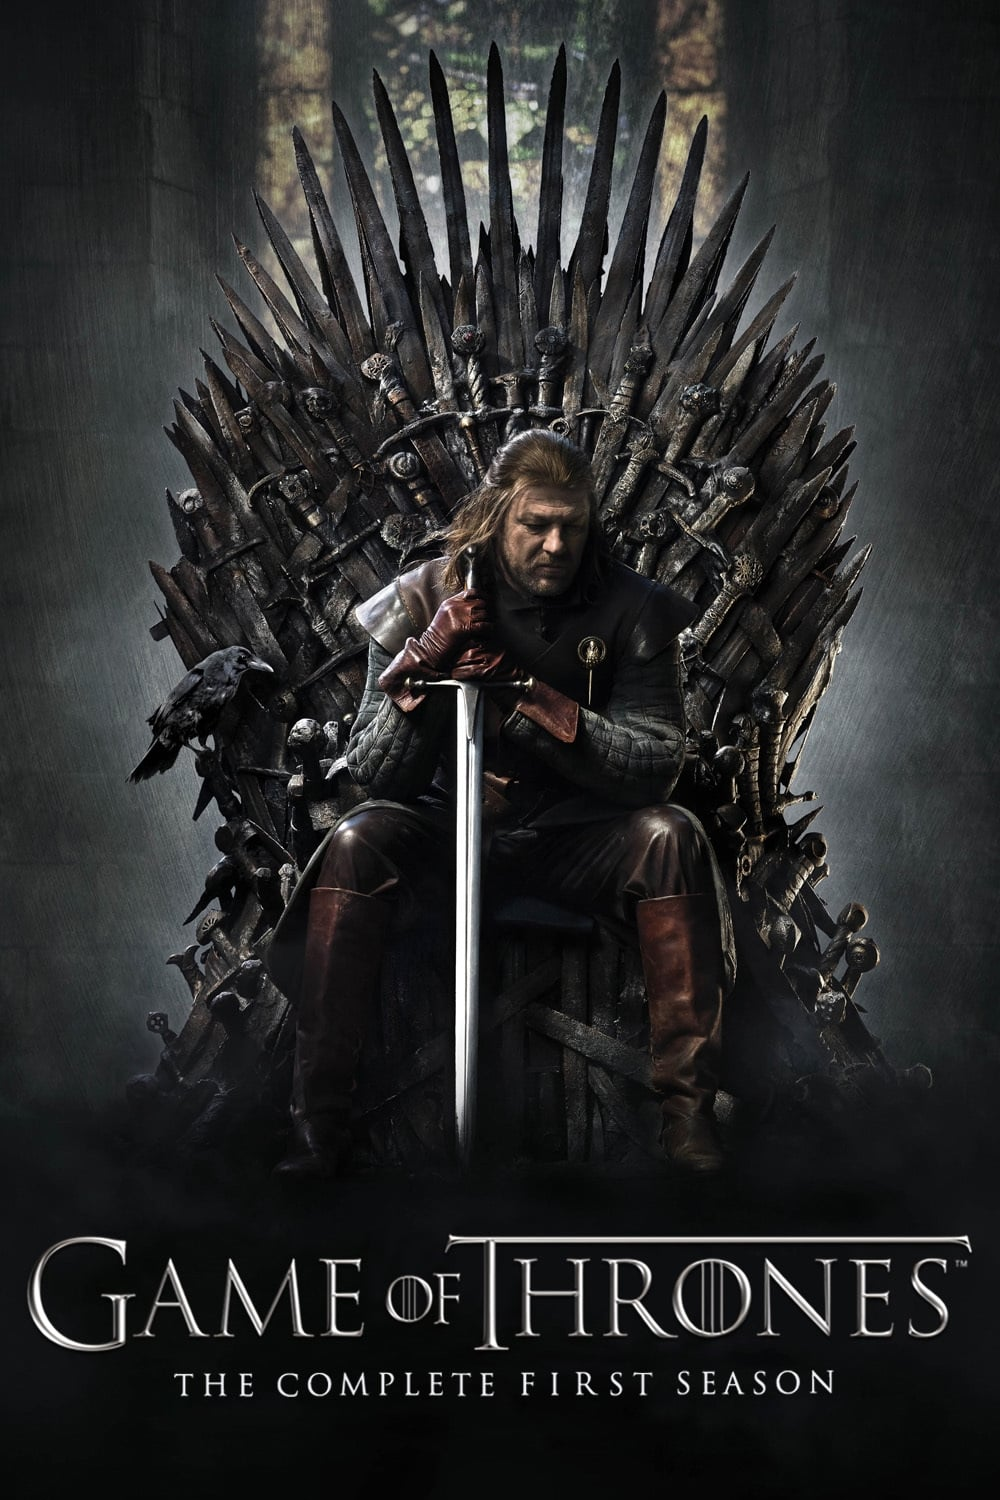 http://www.thepiratefilmeshd.com/game-of-thrones-1a-temporada-2011-bdrip-bluray-720p-torrent-dual-audio/